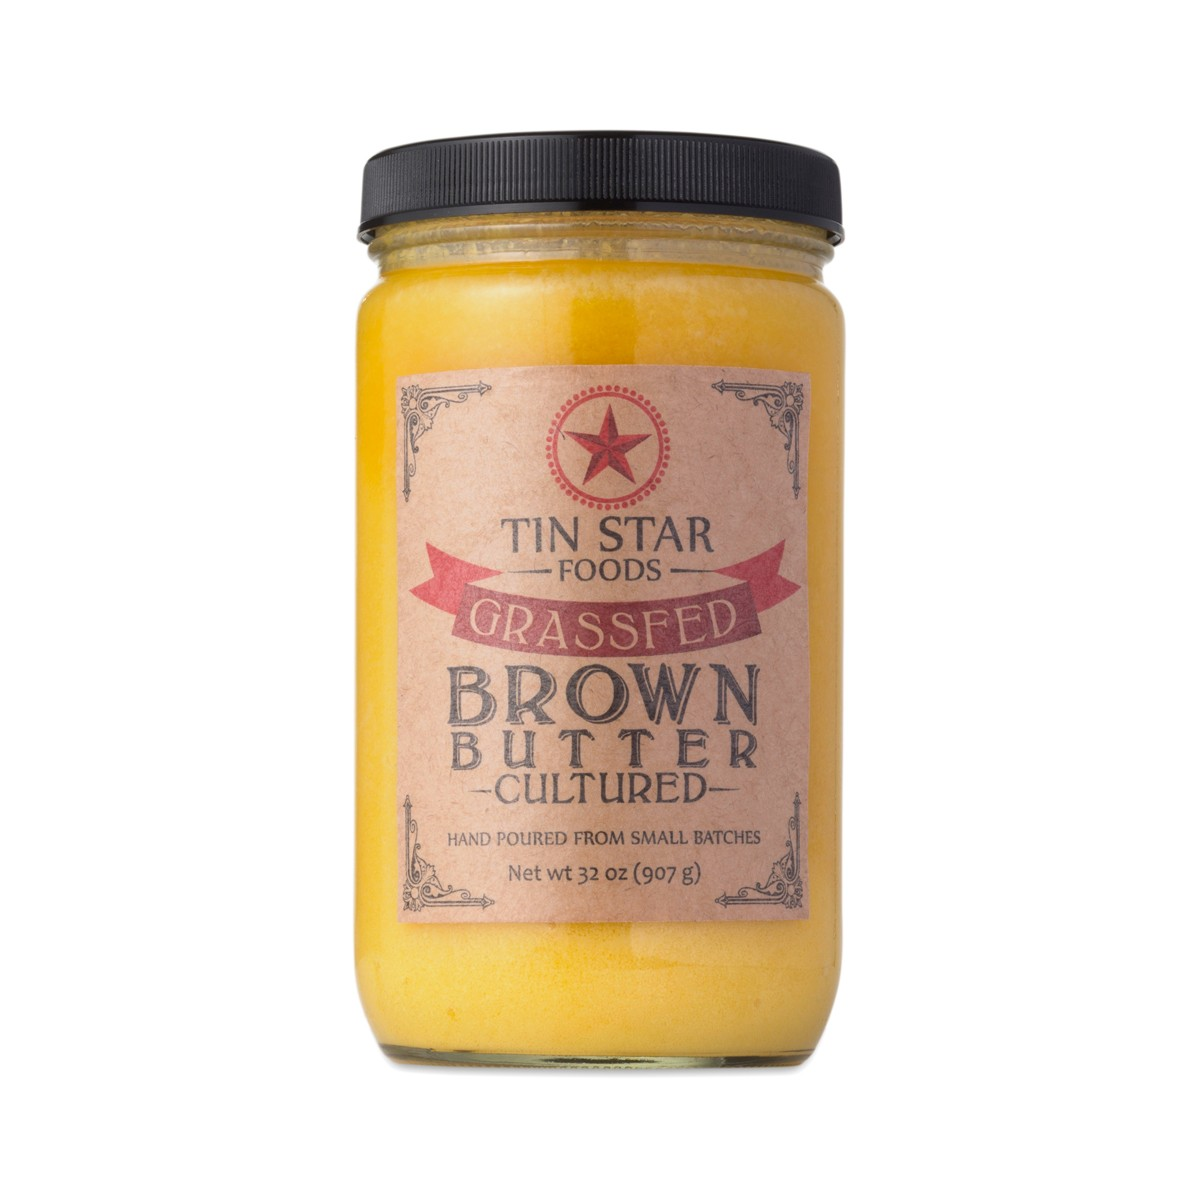 Cultured Brown Butter, Grass-Fed by Tin Star Foods - Thrive Market